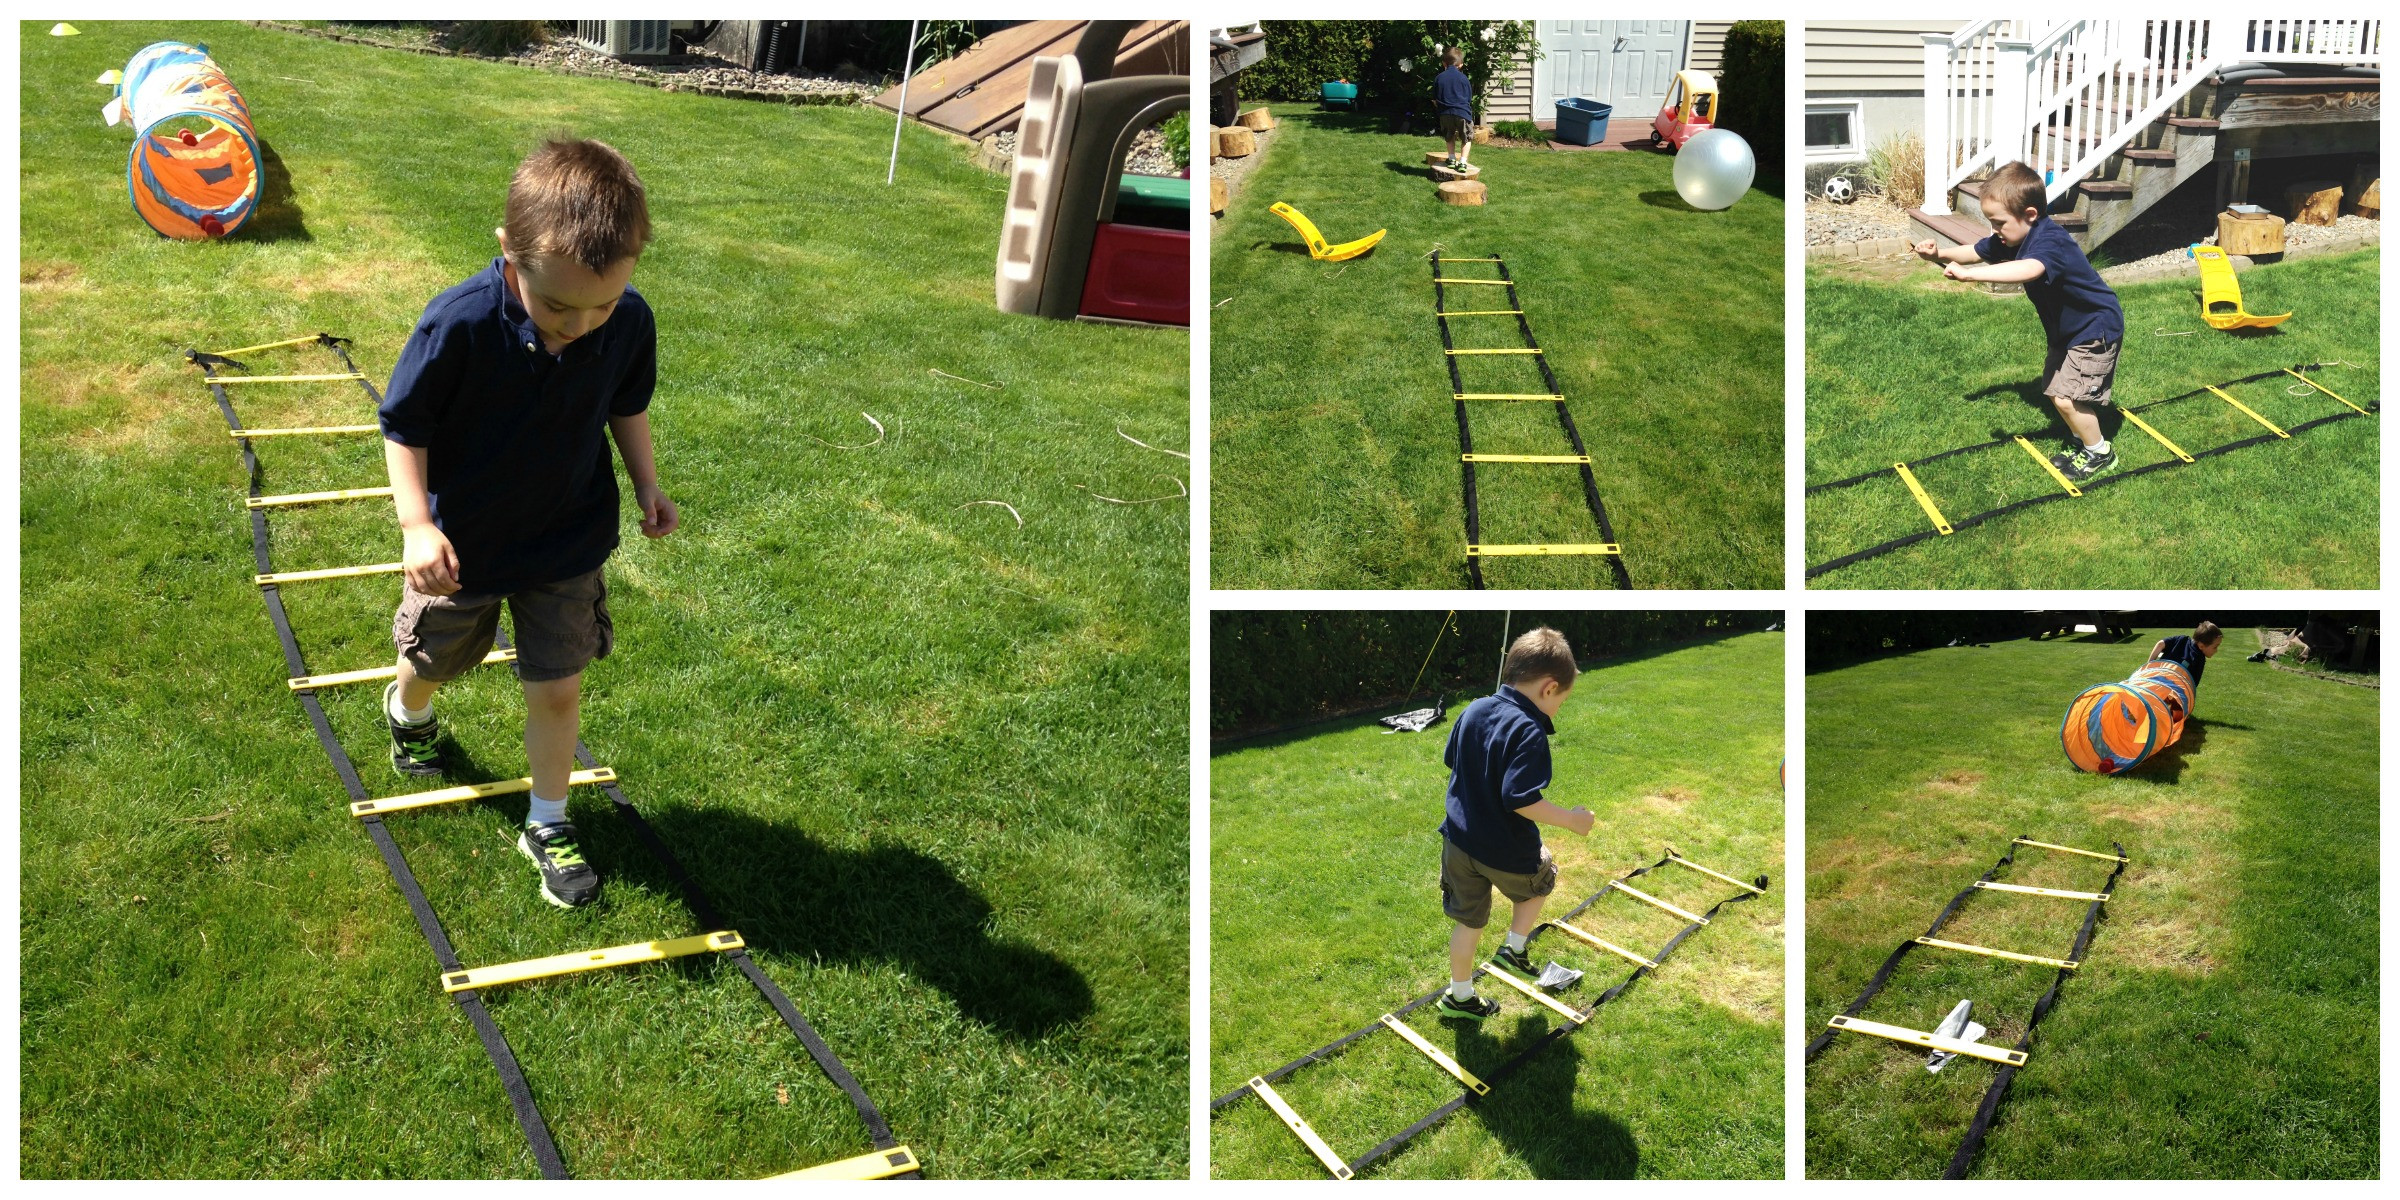 DIY Obstacle Course For Kids  6 Easy DIY Games For Your Kids Chadwicks Blog